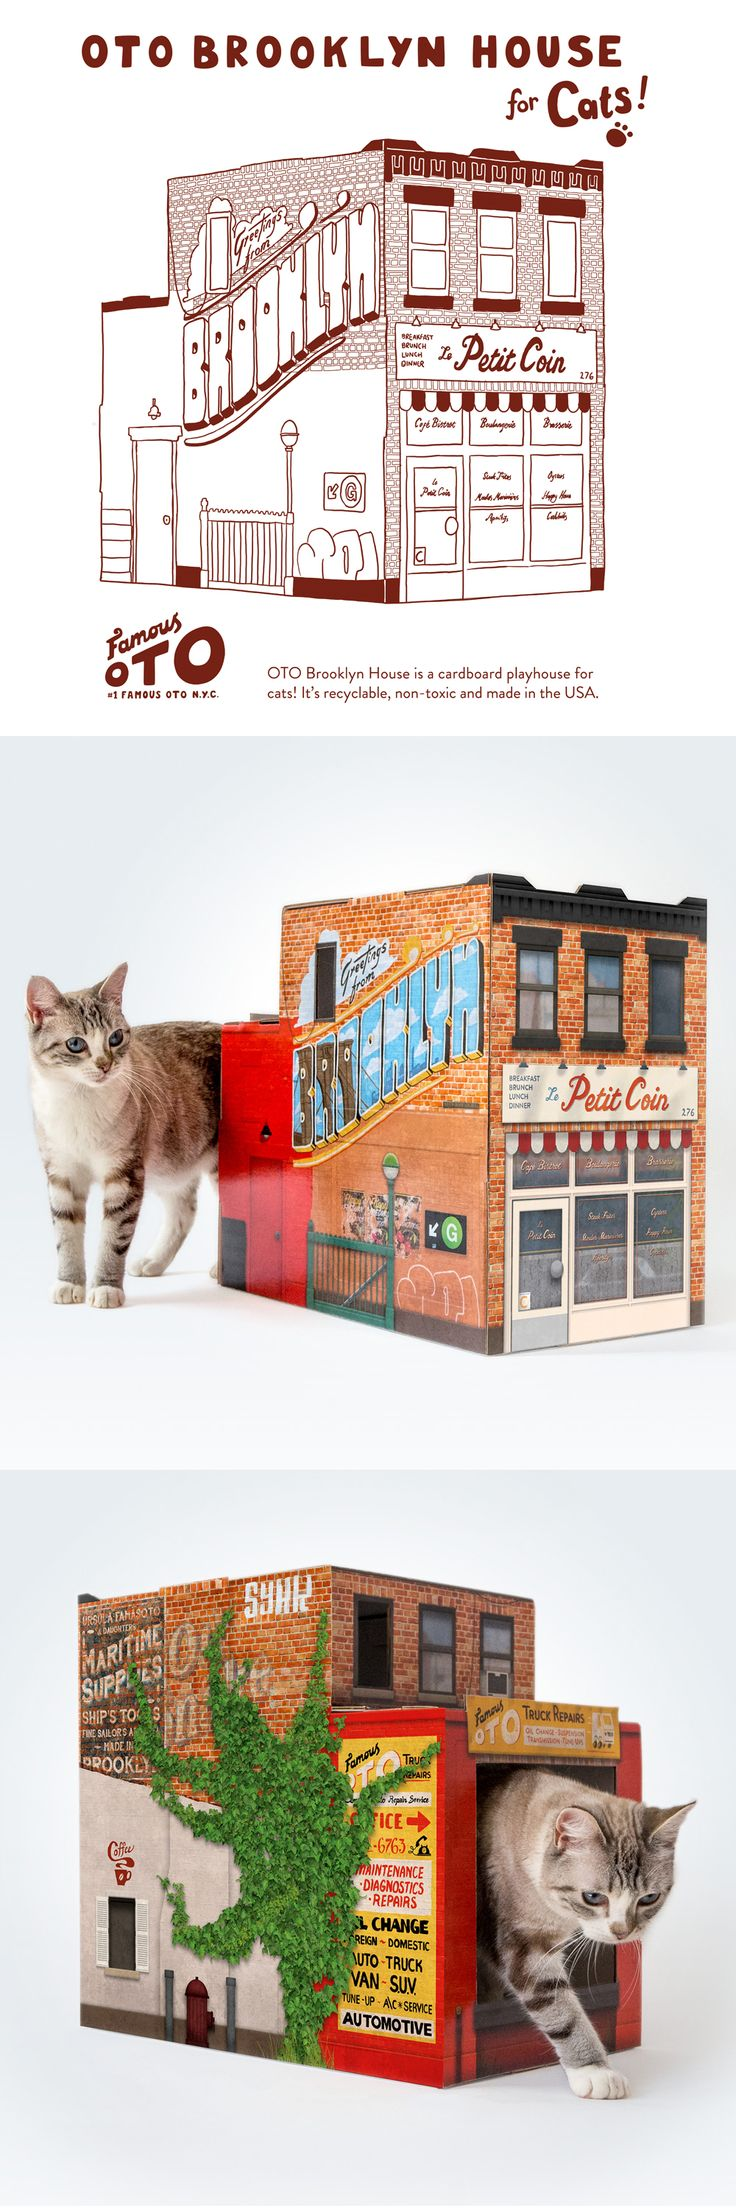 Introducing OTO Brooklyn House for Cats! This one's a tribute to our home borough, and the wonderfully patched-up buildings that line the streets from Greenpoint to Coney Island. OTO Brooklyn House for Cats features a French bistro in the front and a truck repair garage in the back. It's even got the G-train, which works approximately as well as the real thing (zing!). It's also got a side window for serving coffee - or perhaps a mauling.